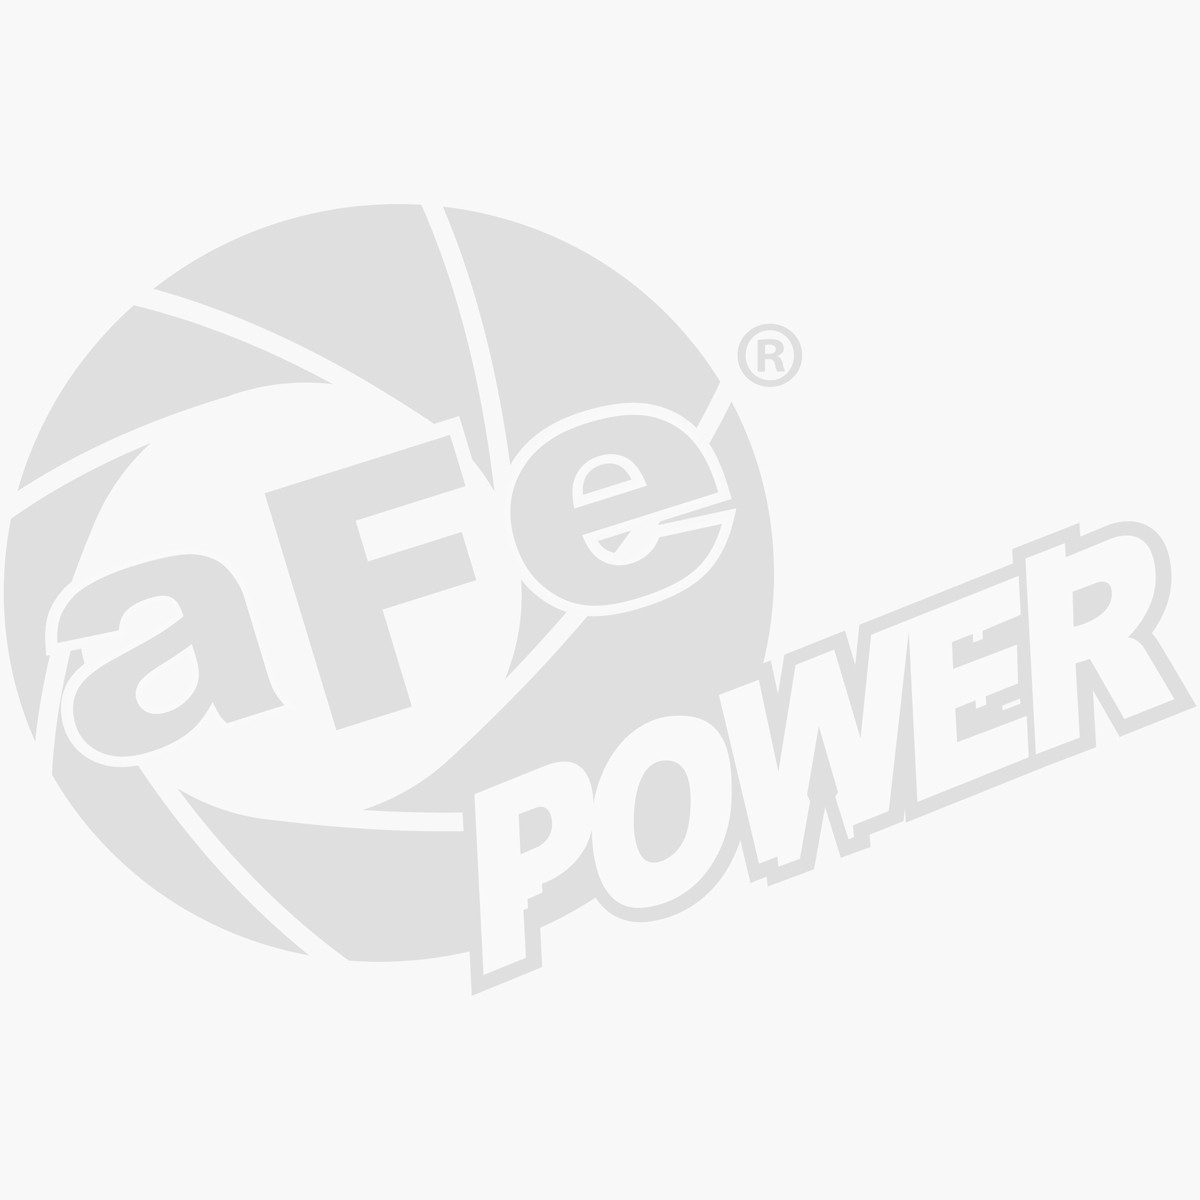 aFe POWER 18-11603 Round Racing Pro 5R Air Filter